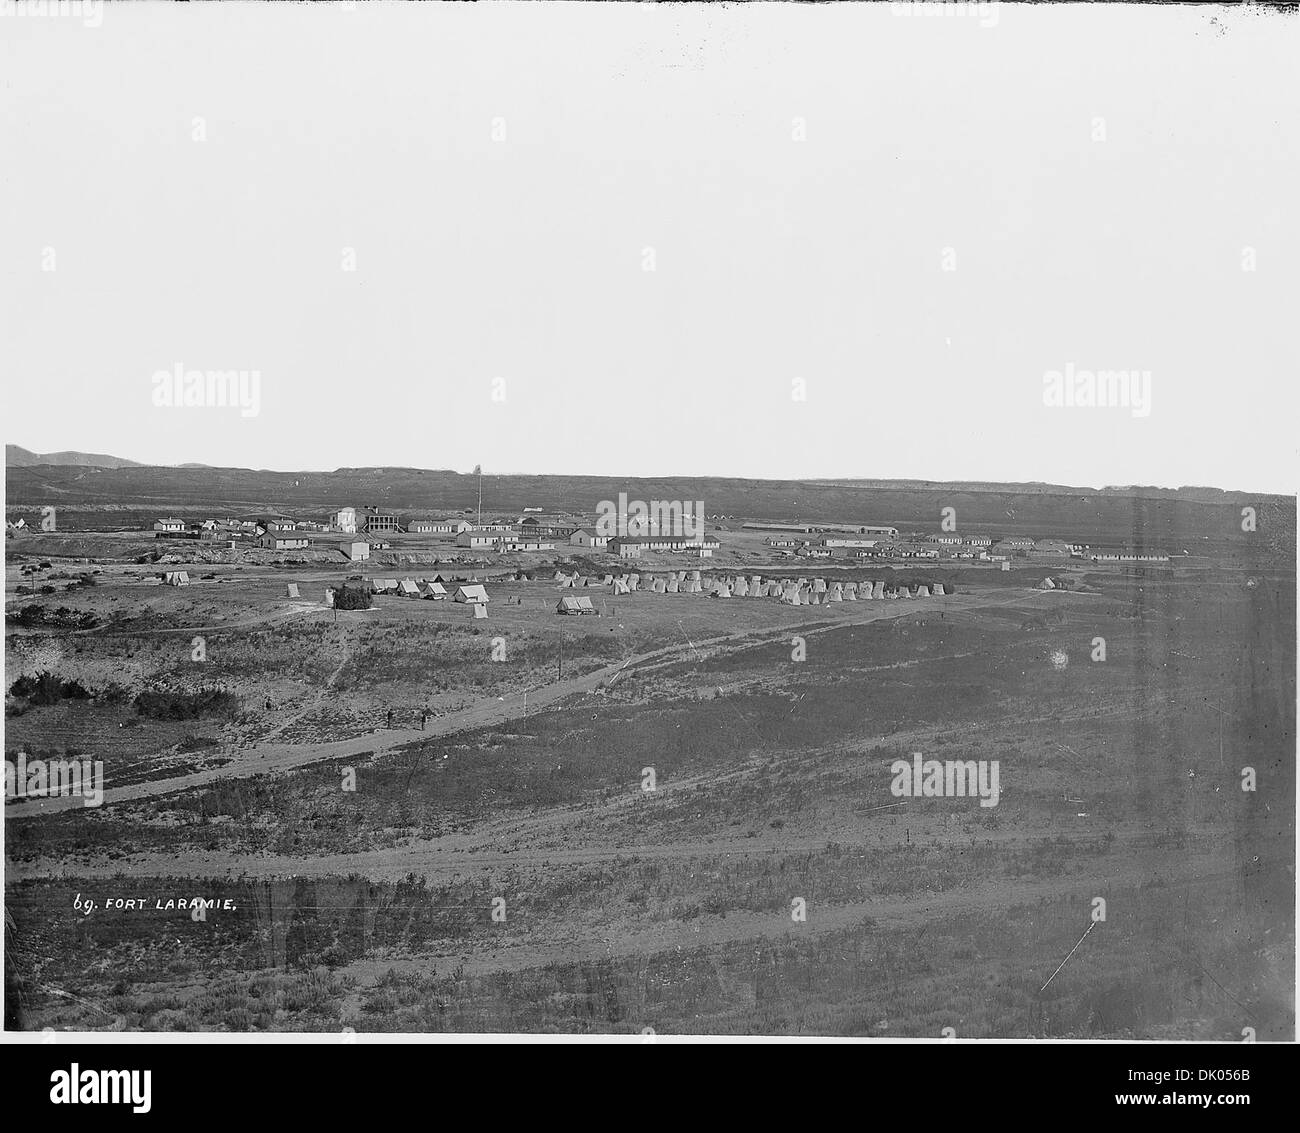 Fort Laramie. Post as it appeared in 1868. Orginally located as a fur trading post in 1834, known as Fort William... 516878 - Stock Image